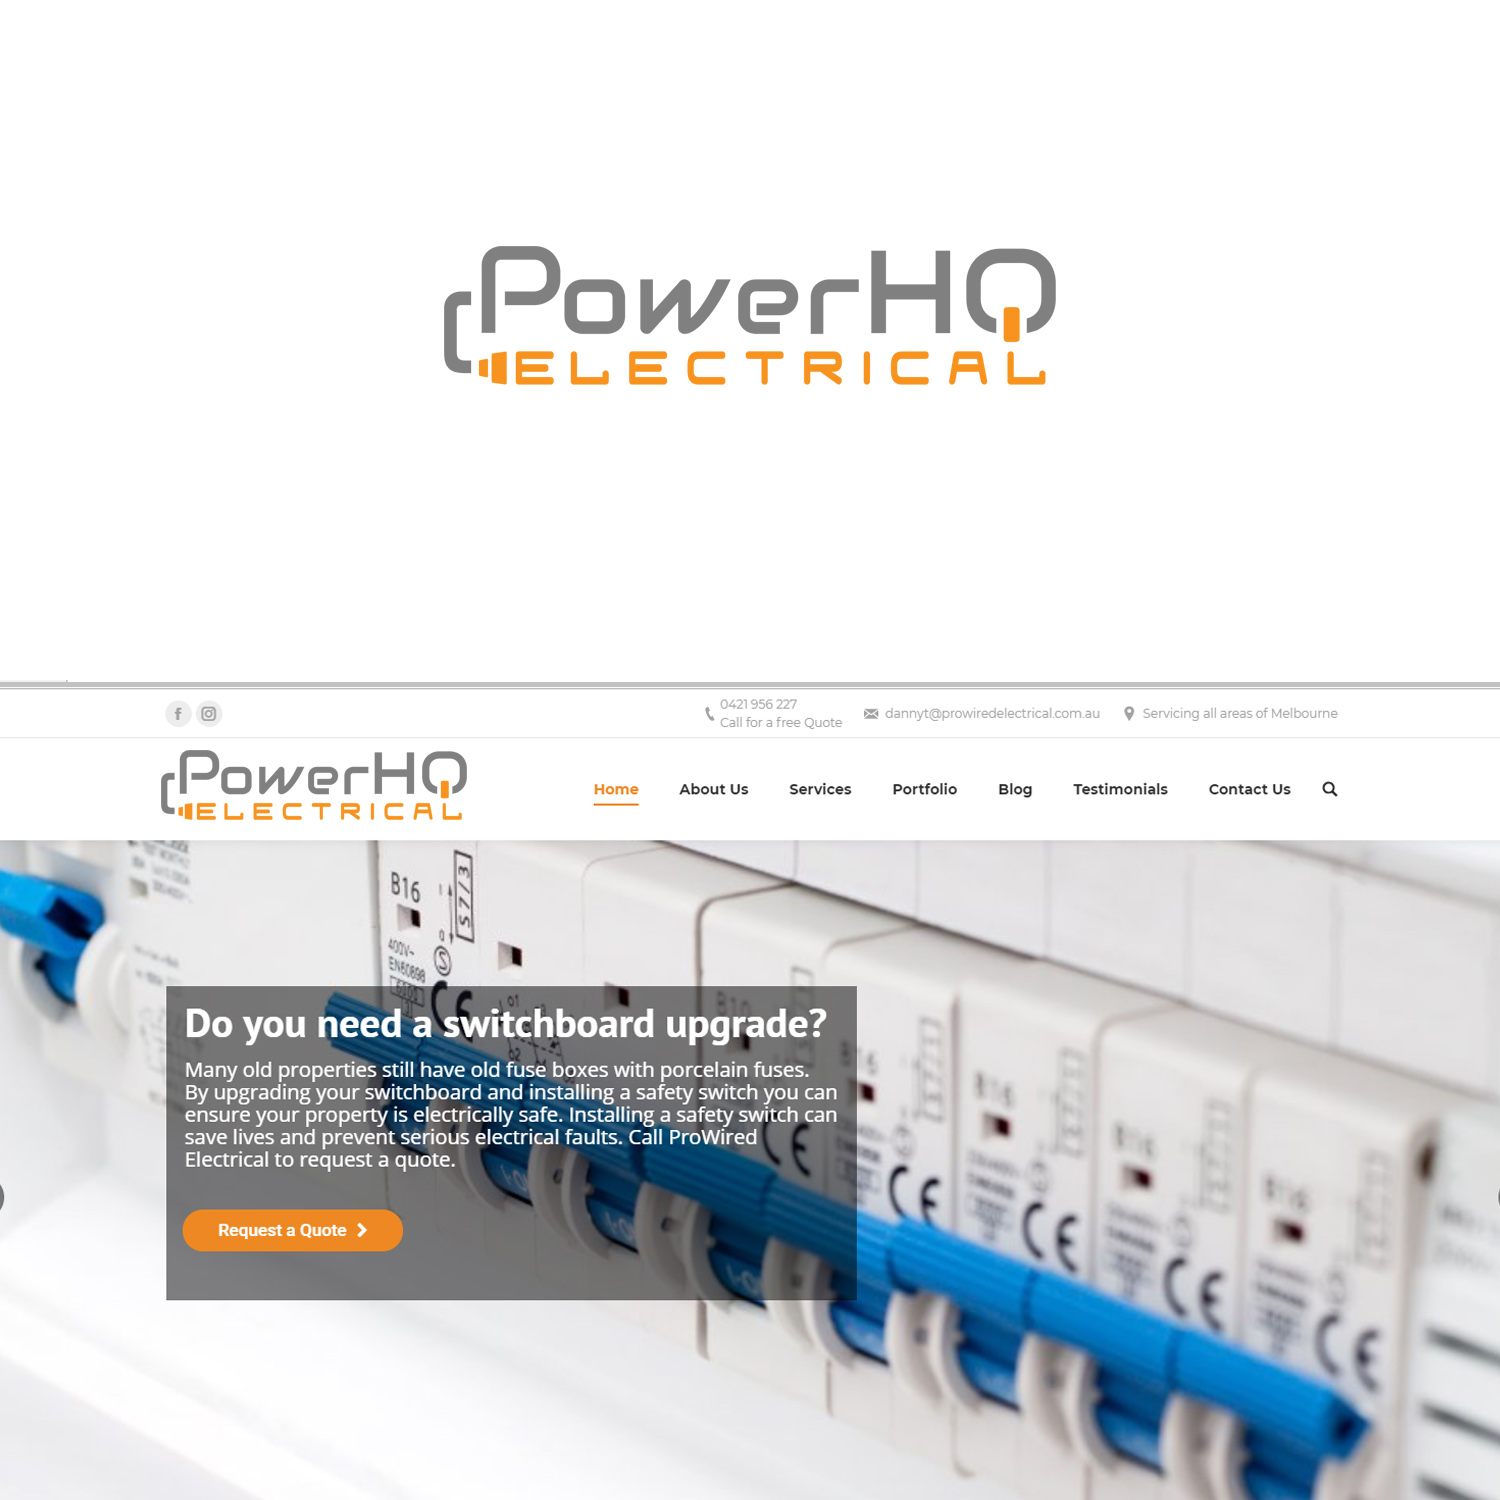 Modern Bold Electrician Logo Design For Powerhq Electrical By Upgrading Fuse Boxes Lesia Olesia Prowired 18592296